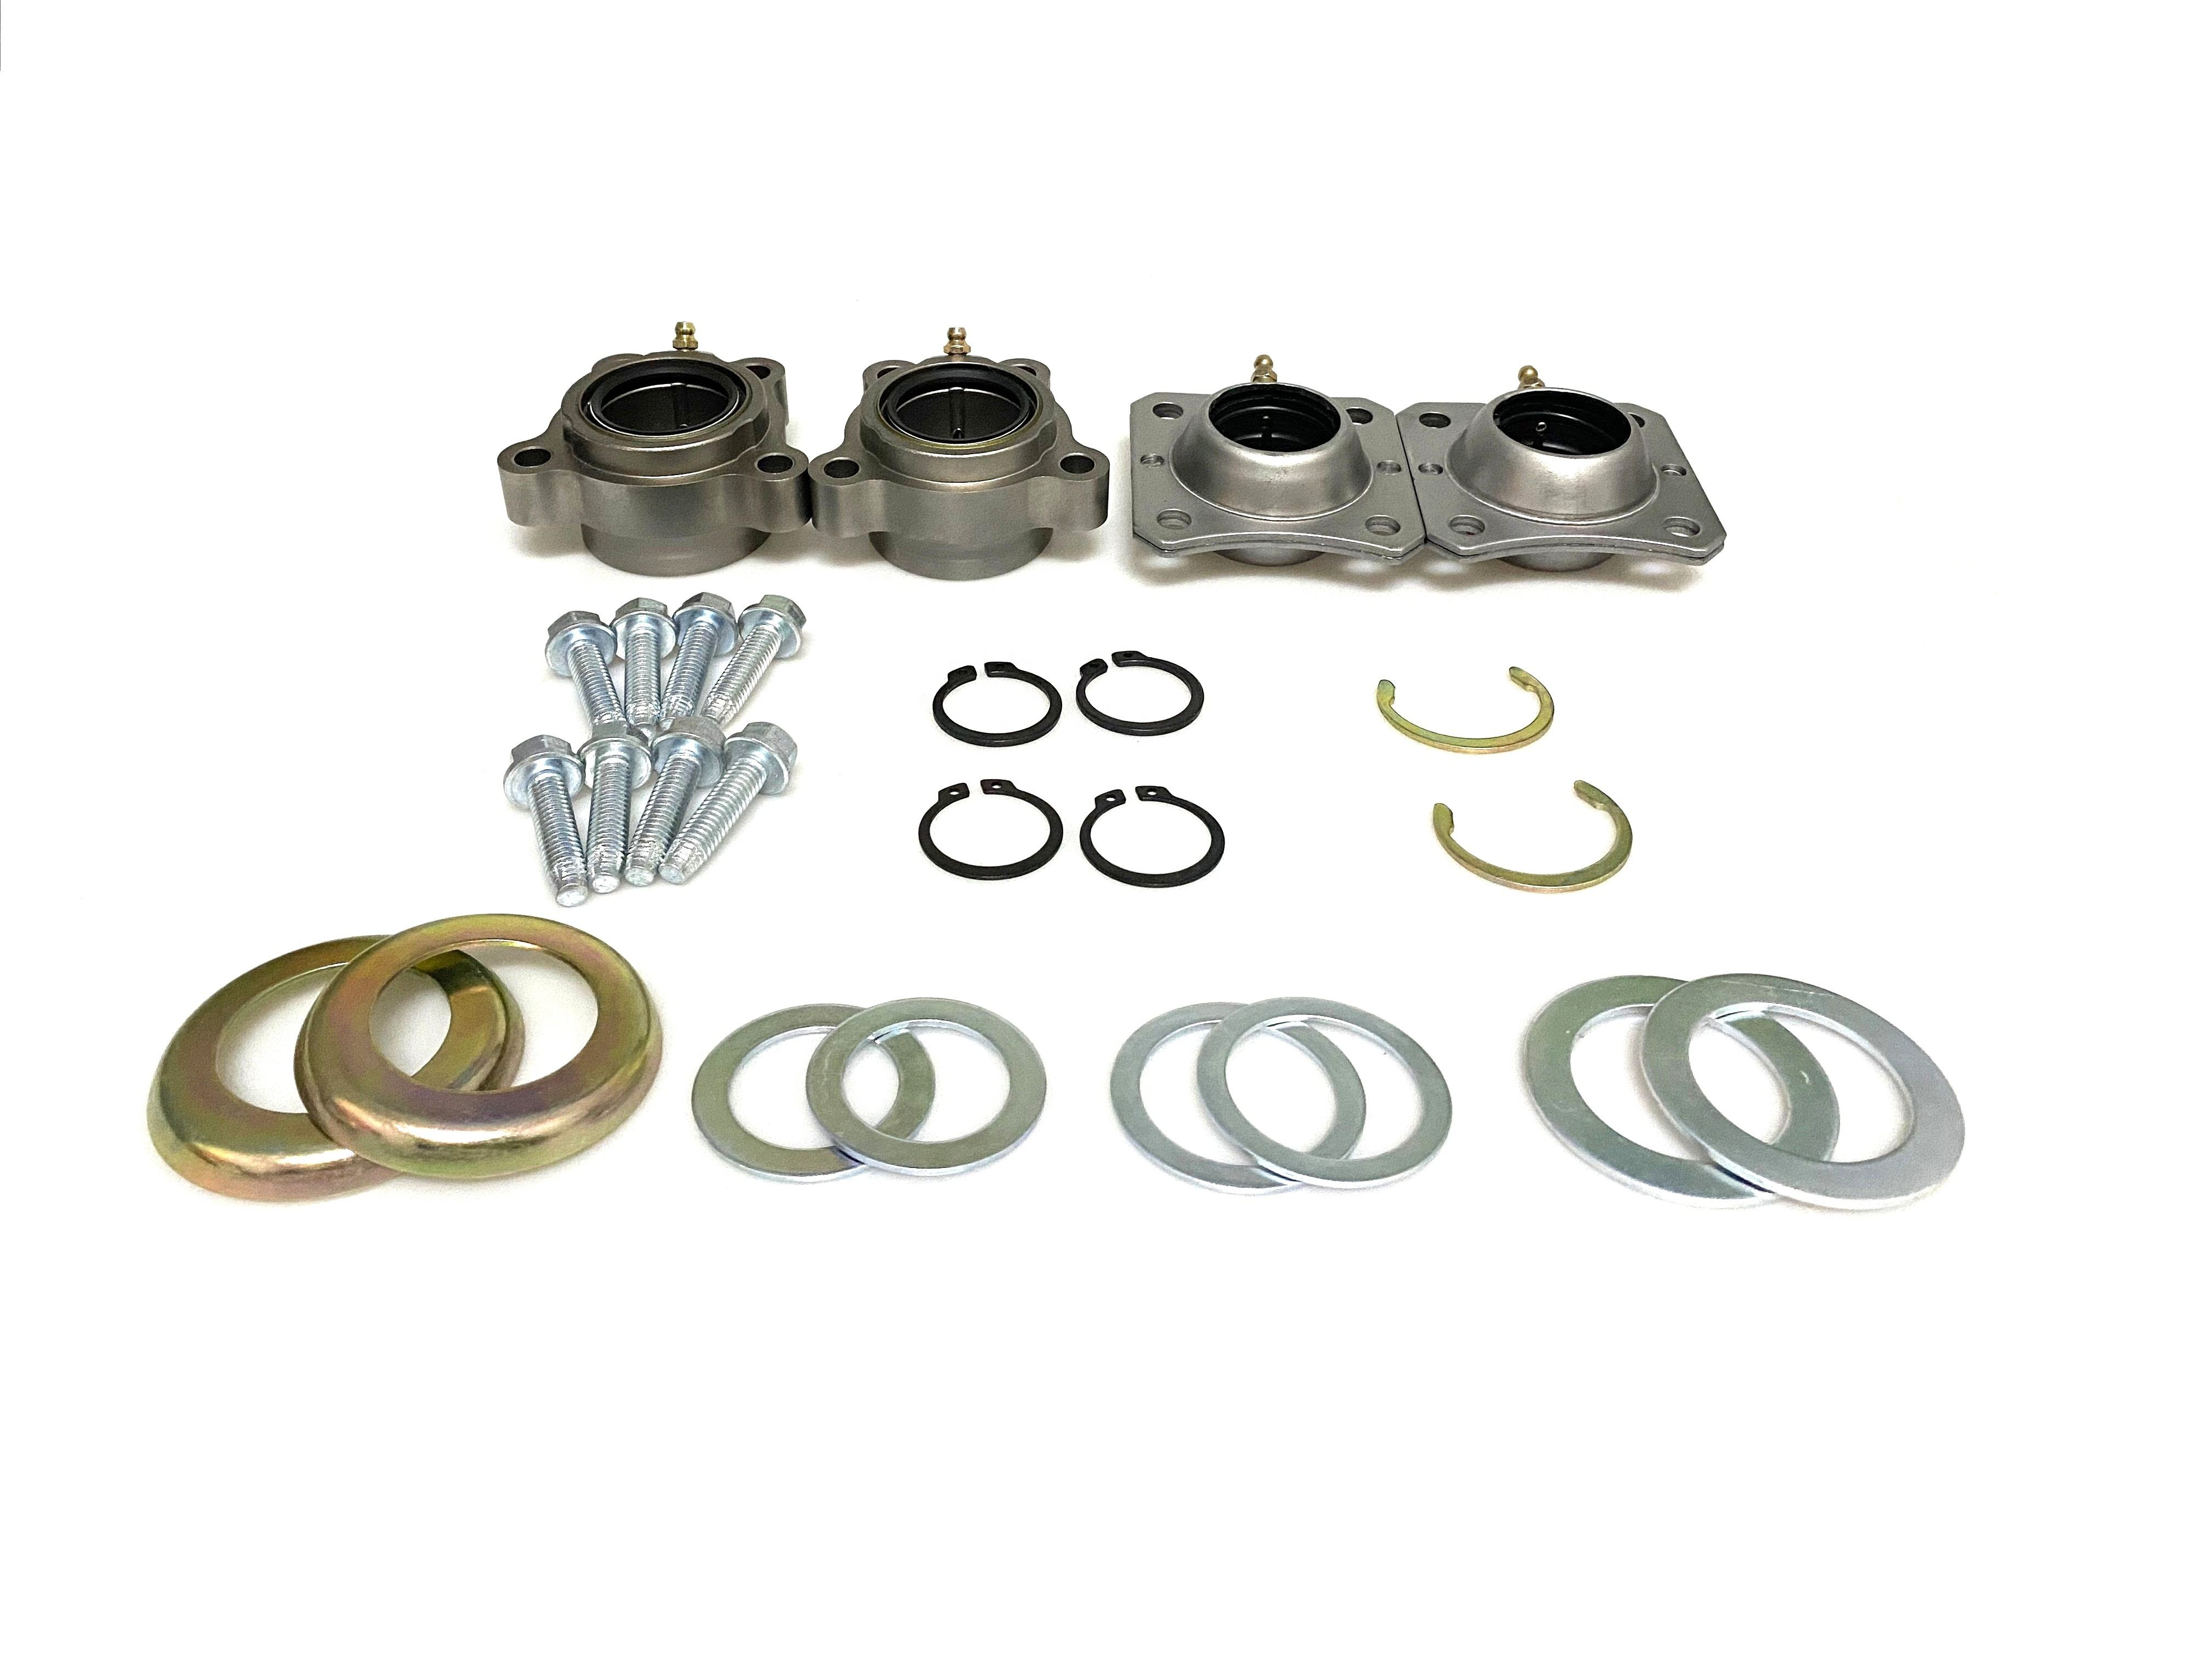 Euclid Camshaft Repair Kit